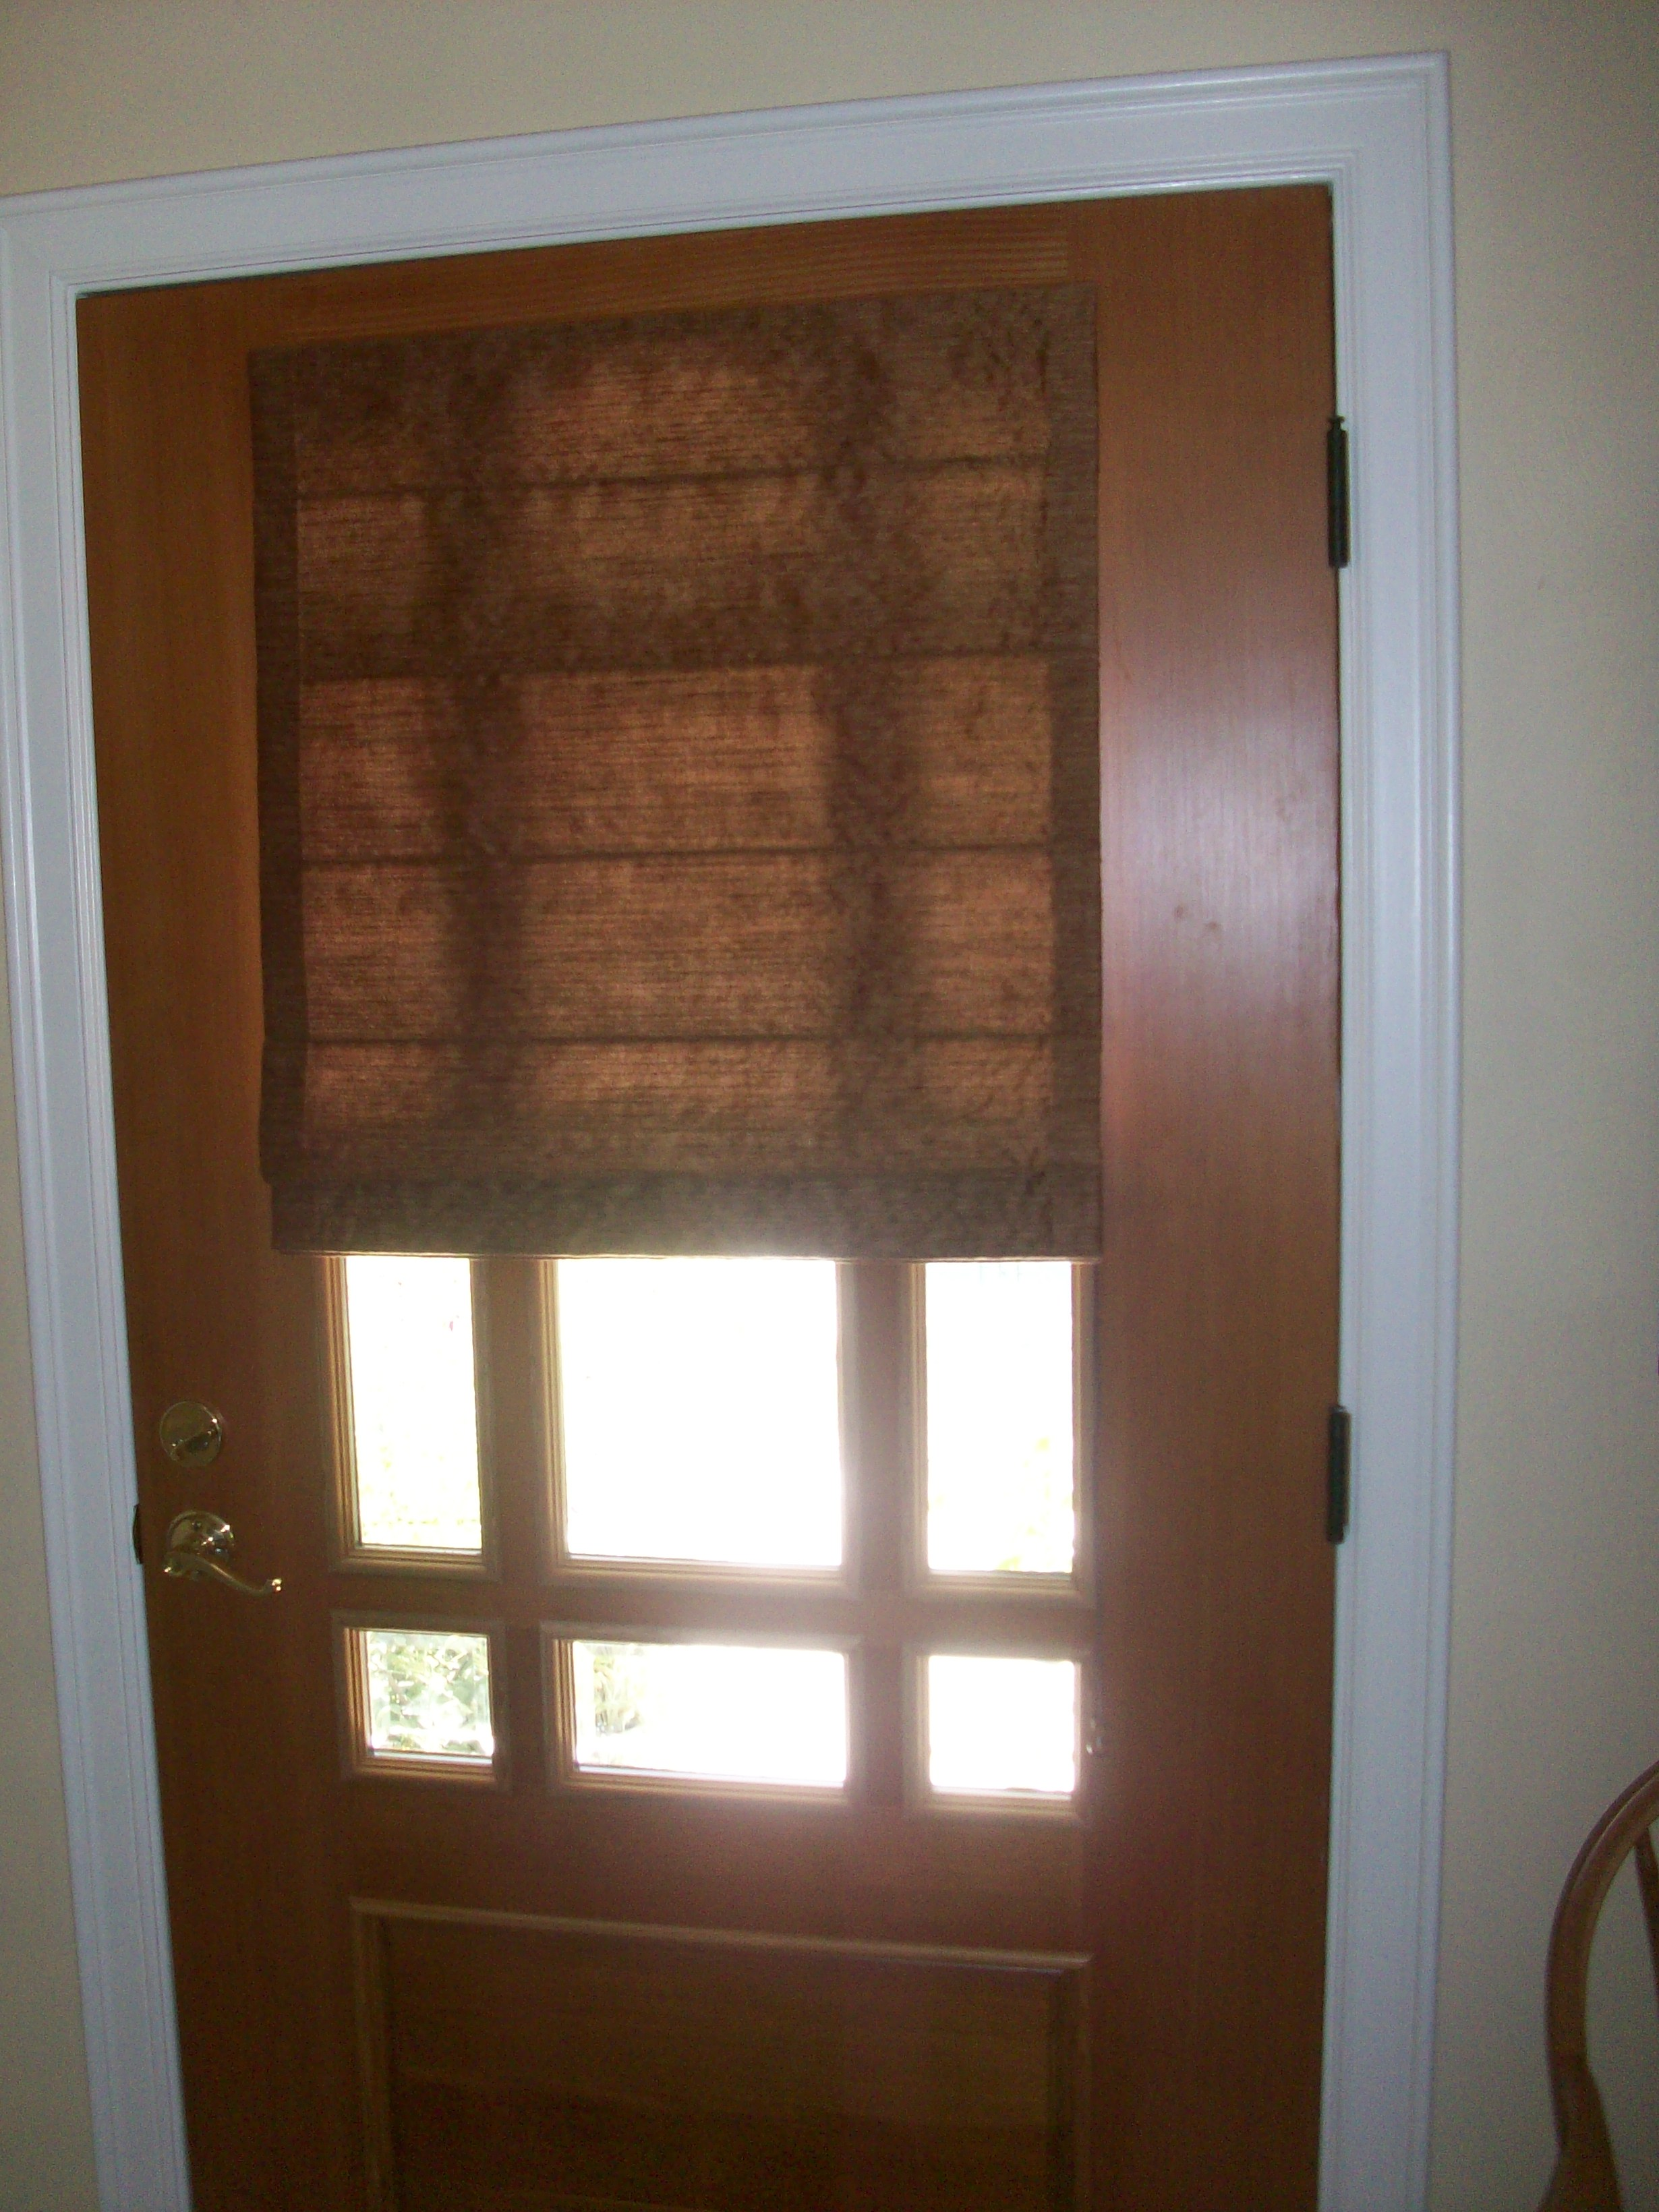 Lowes Shades | Shades at Lowes | Lowes Custom Blinds